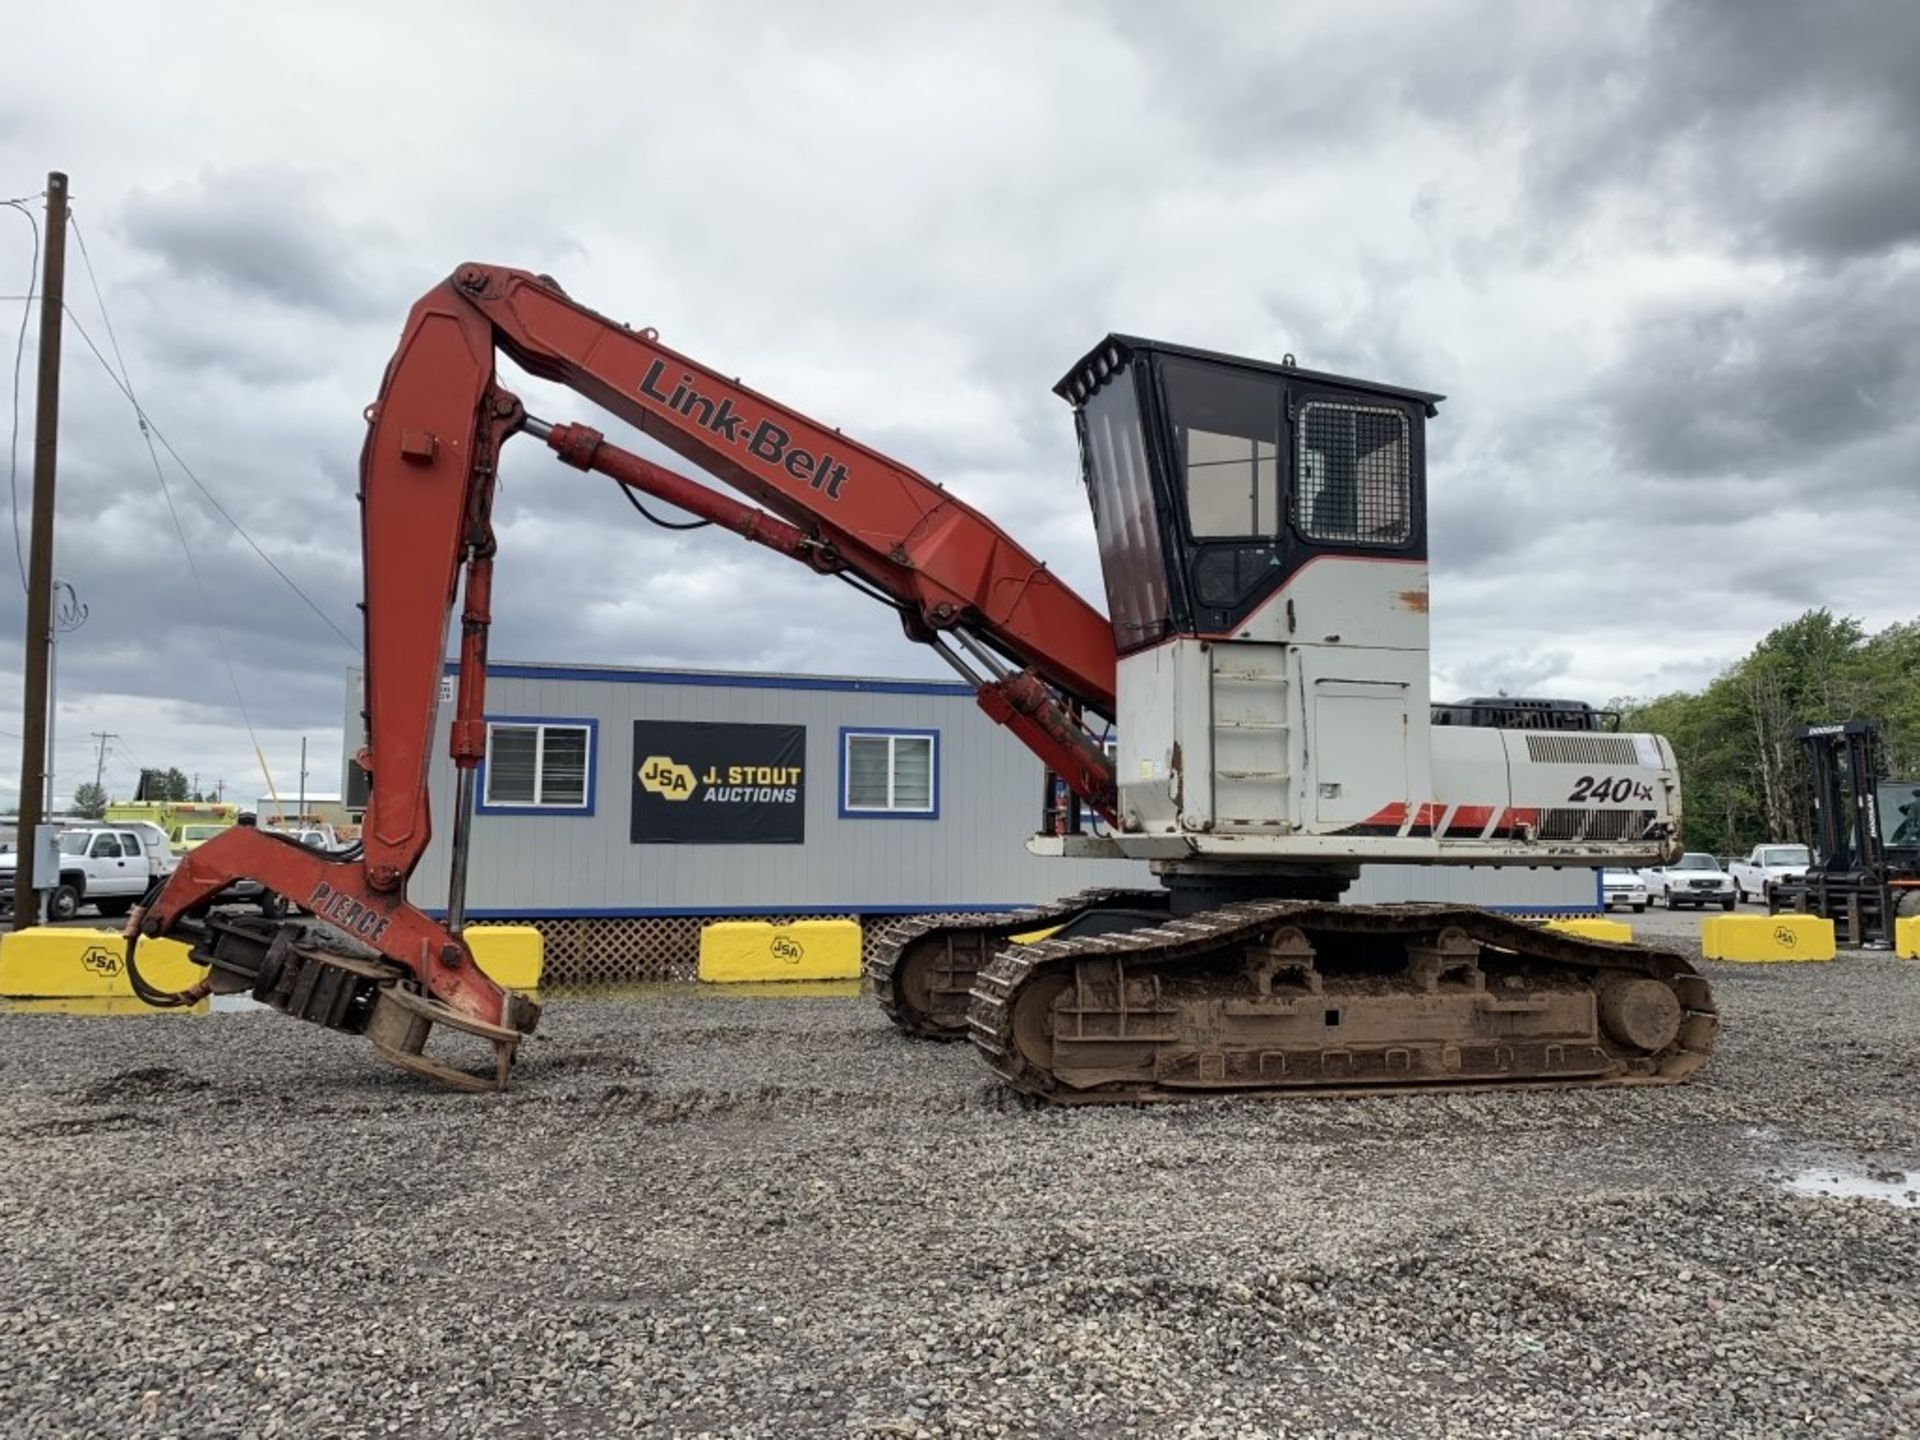 Lot 44 - 2005 Link-Belt 240LX Shovel Logger